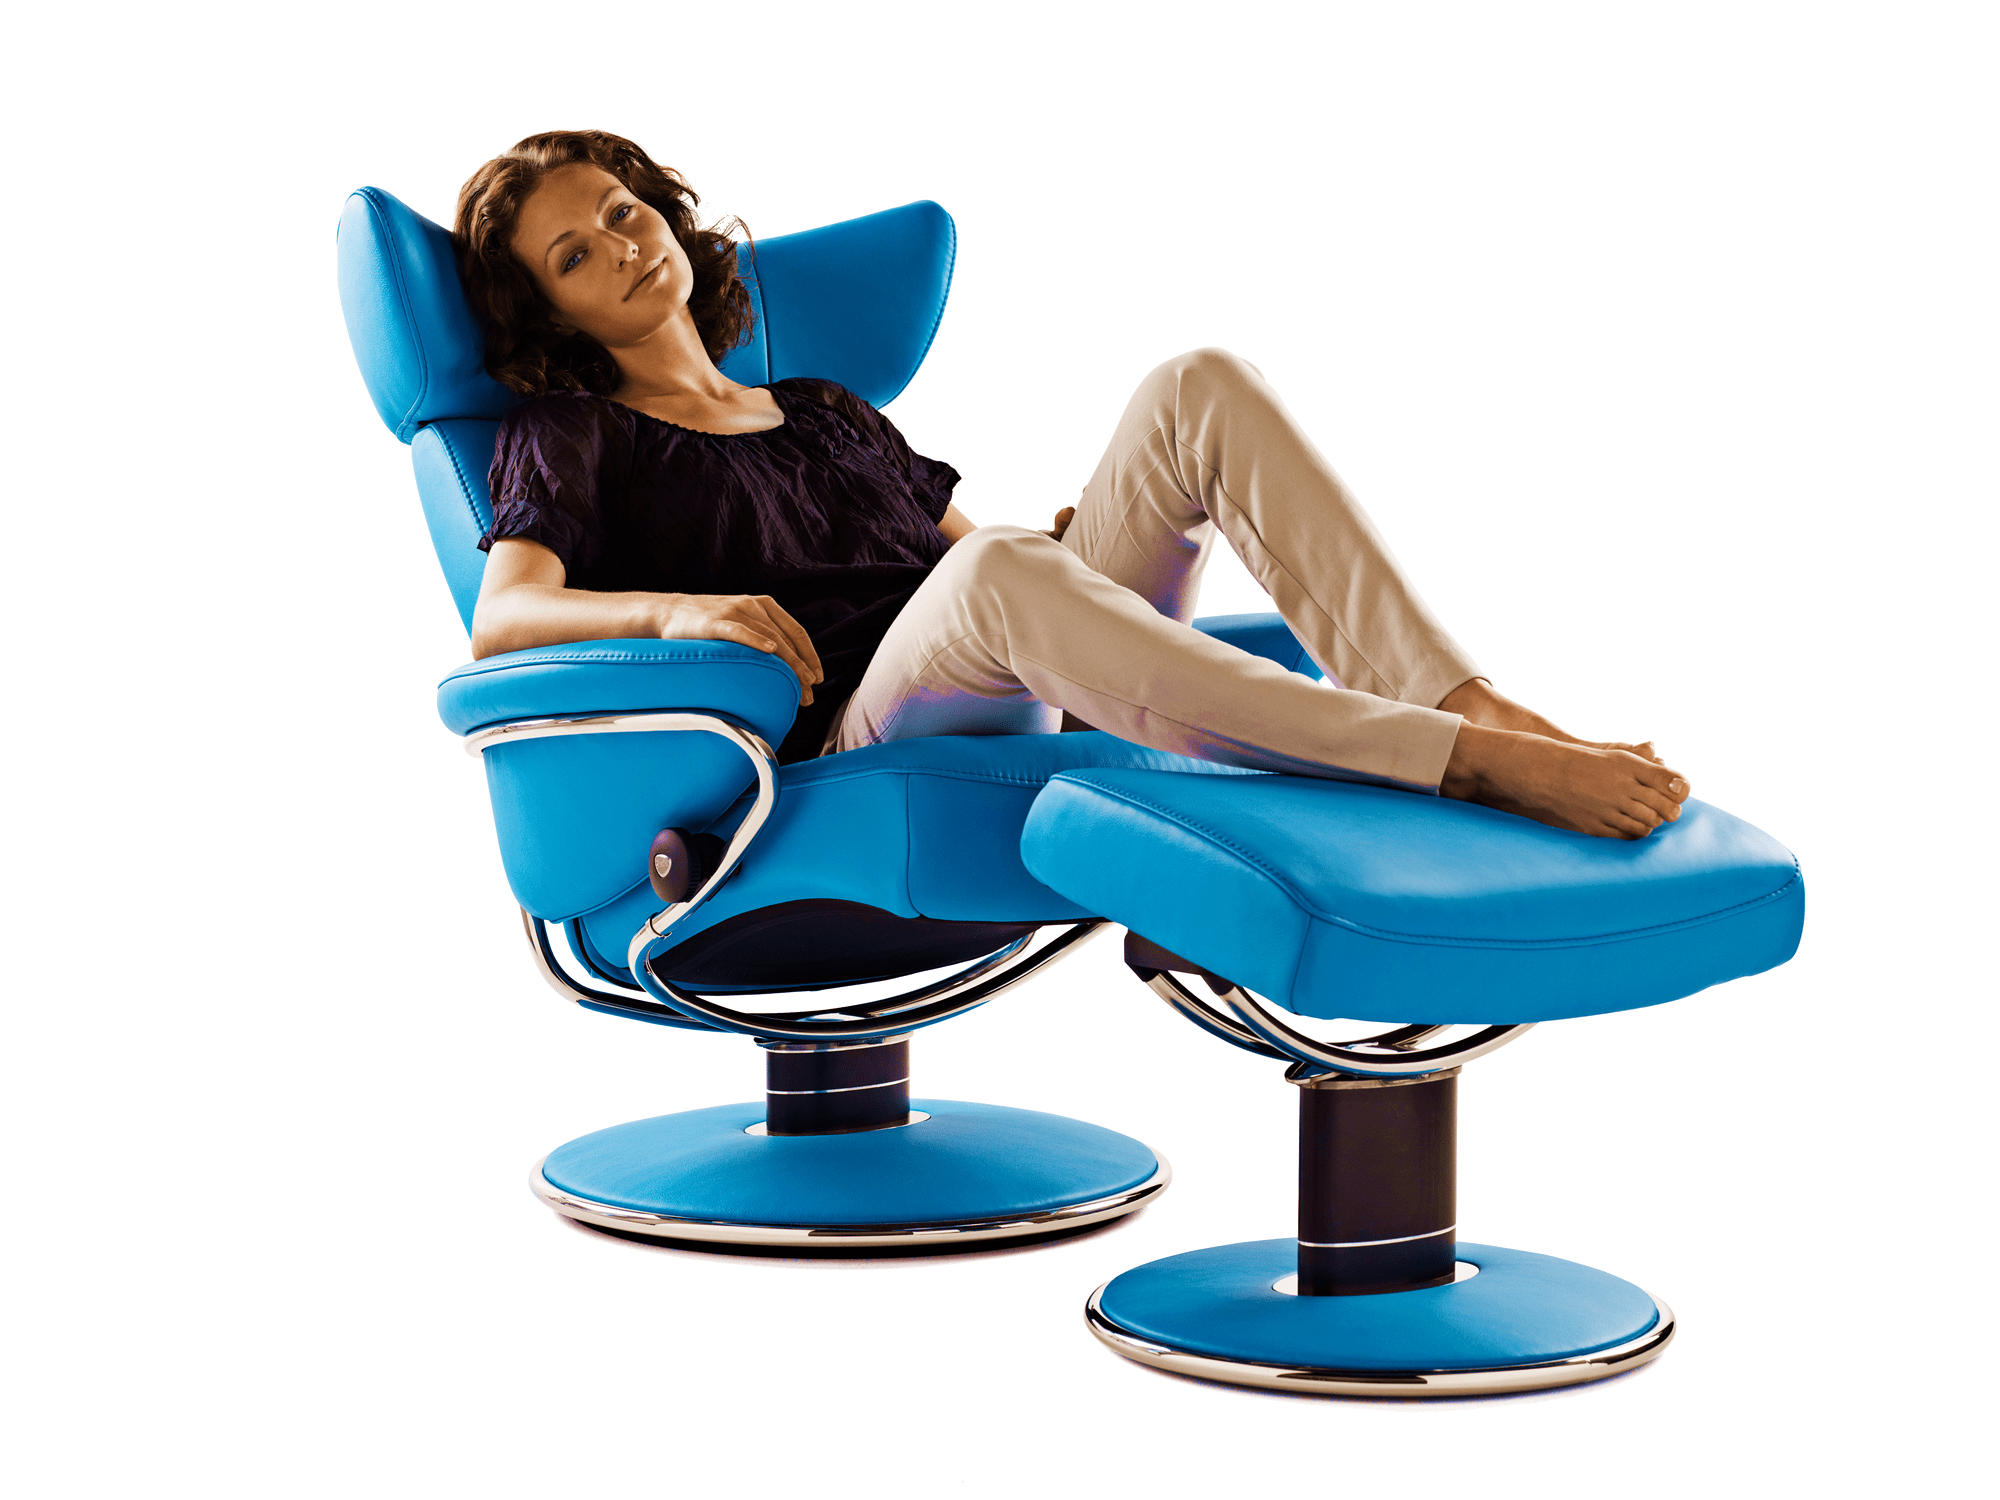 Stressless Jazz Sofa Stressless By Ekornes 4 Out Of 5 Dentists Recommend This